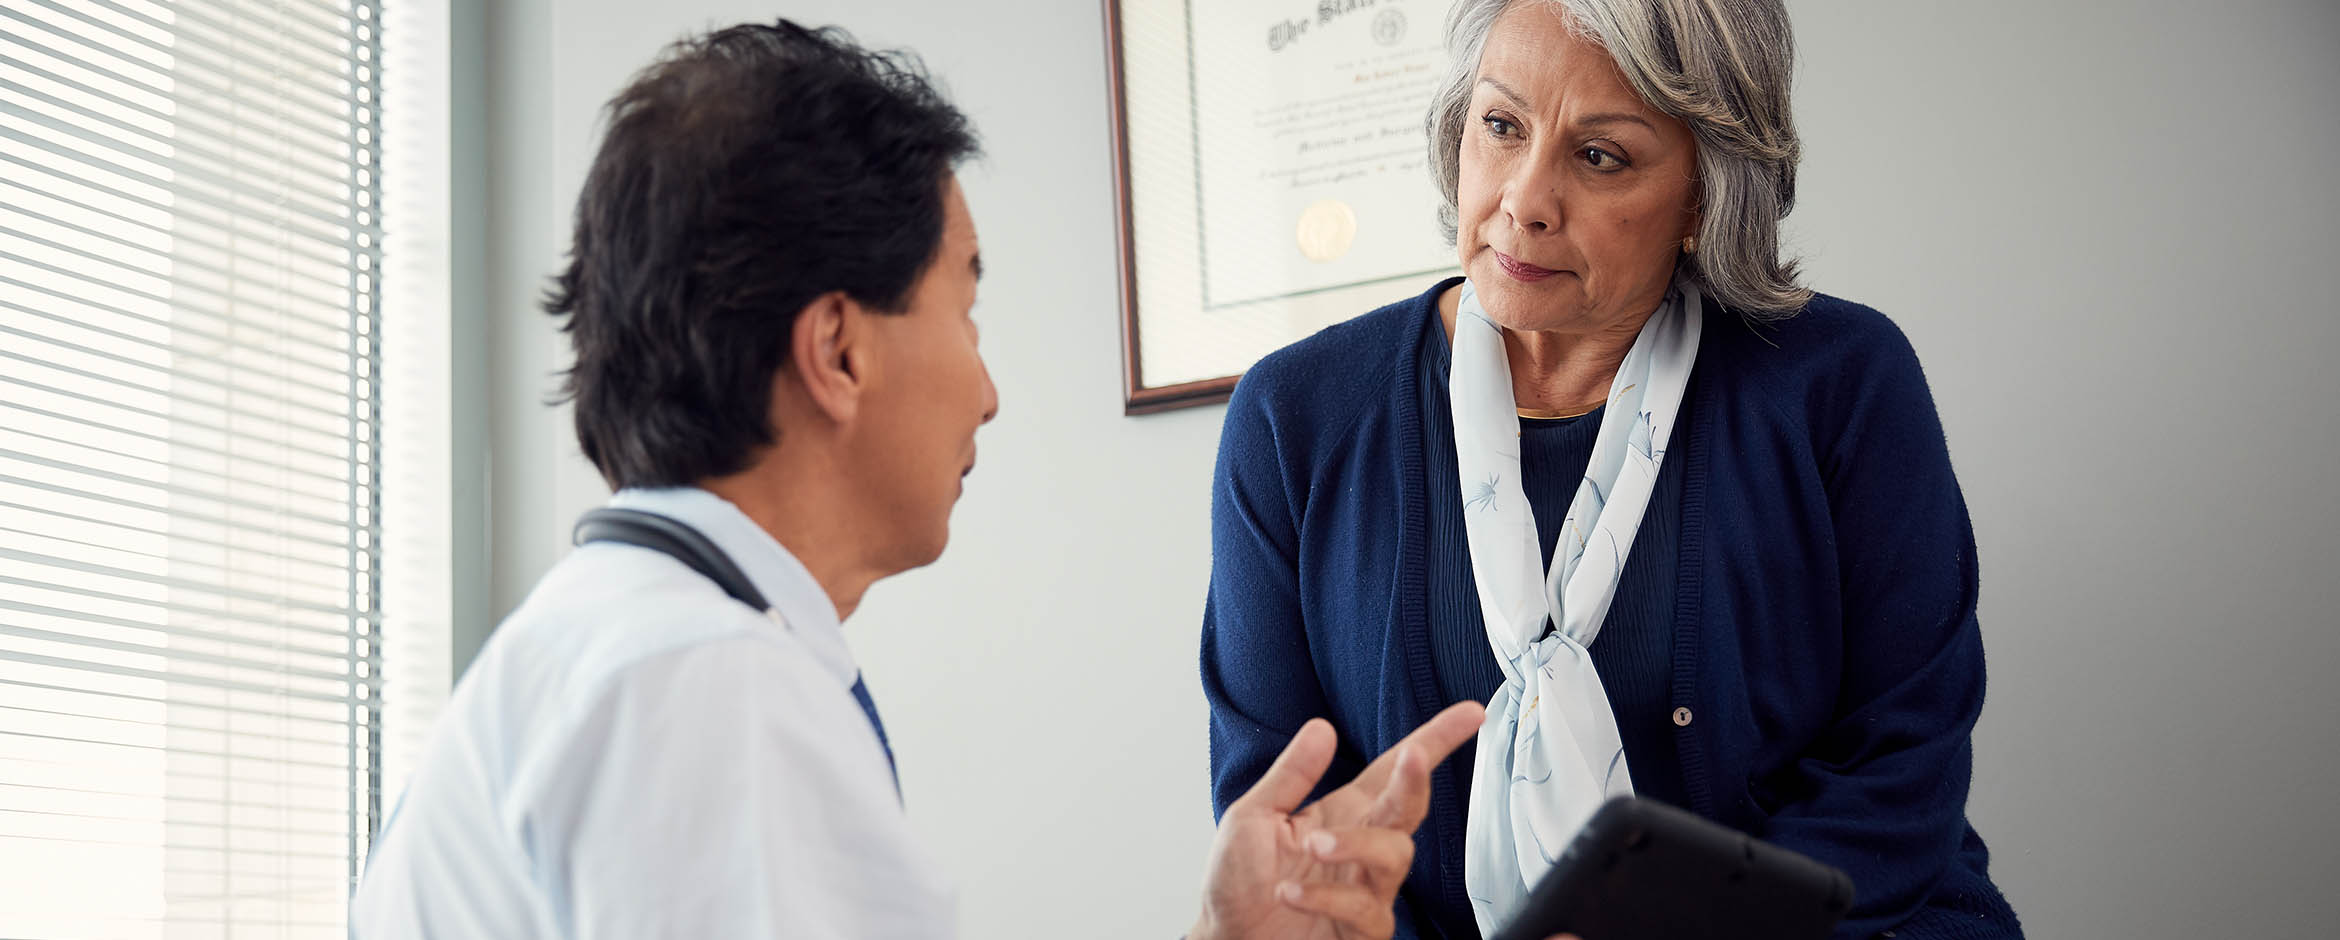 A patient discusses her options with her doctor.